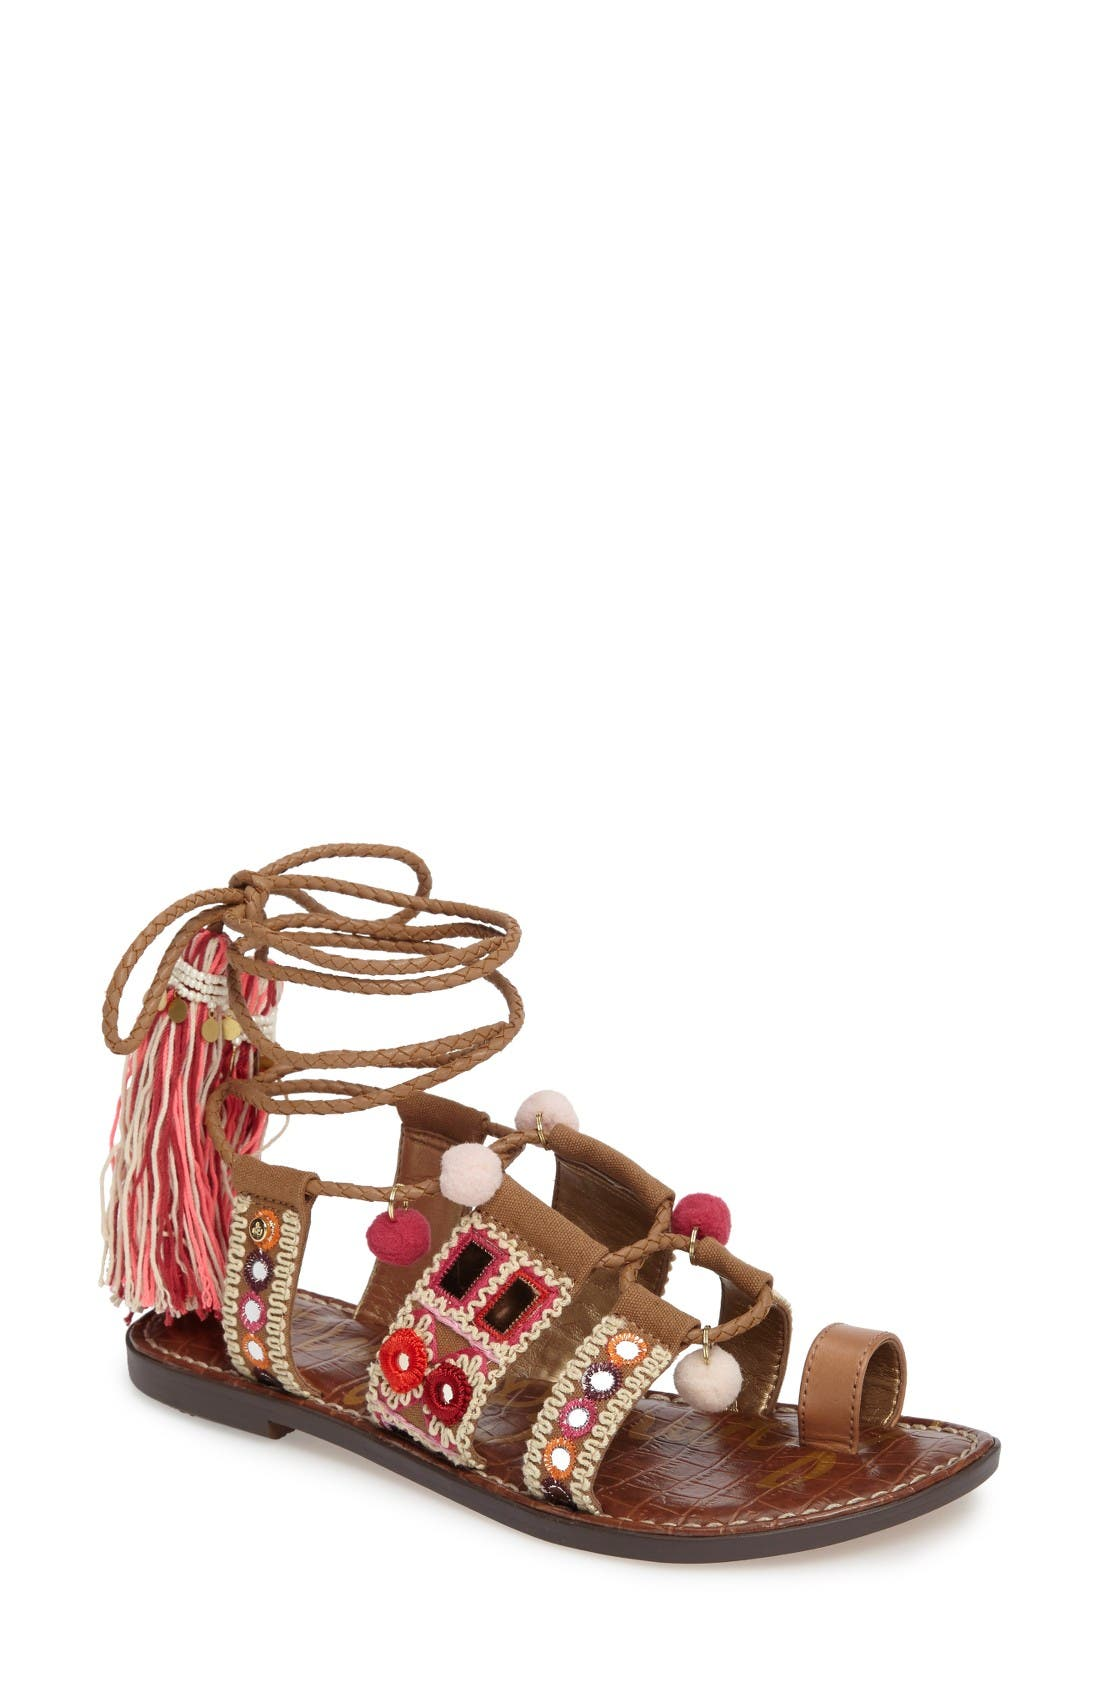 Alternate Image 1 Selected - Sam Edelman Gretchen Gladiator Sandal (Women)